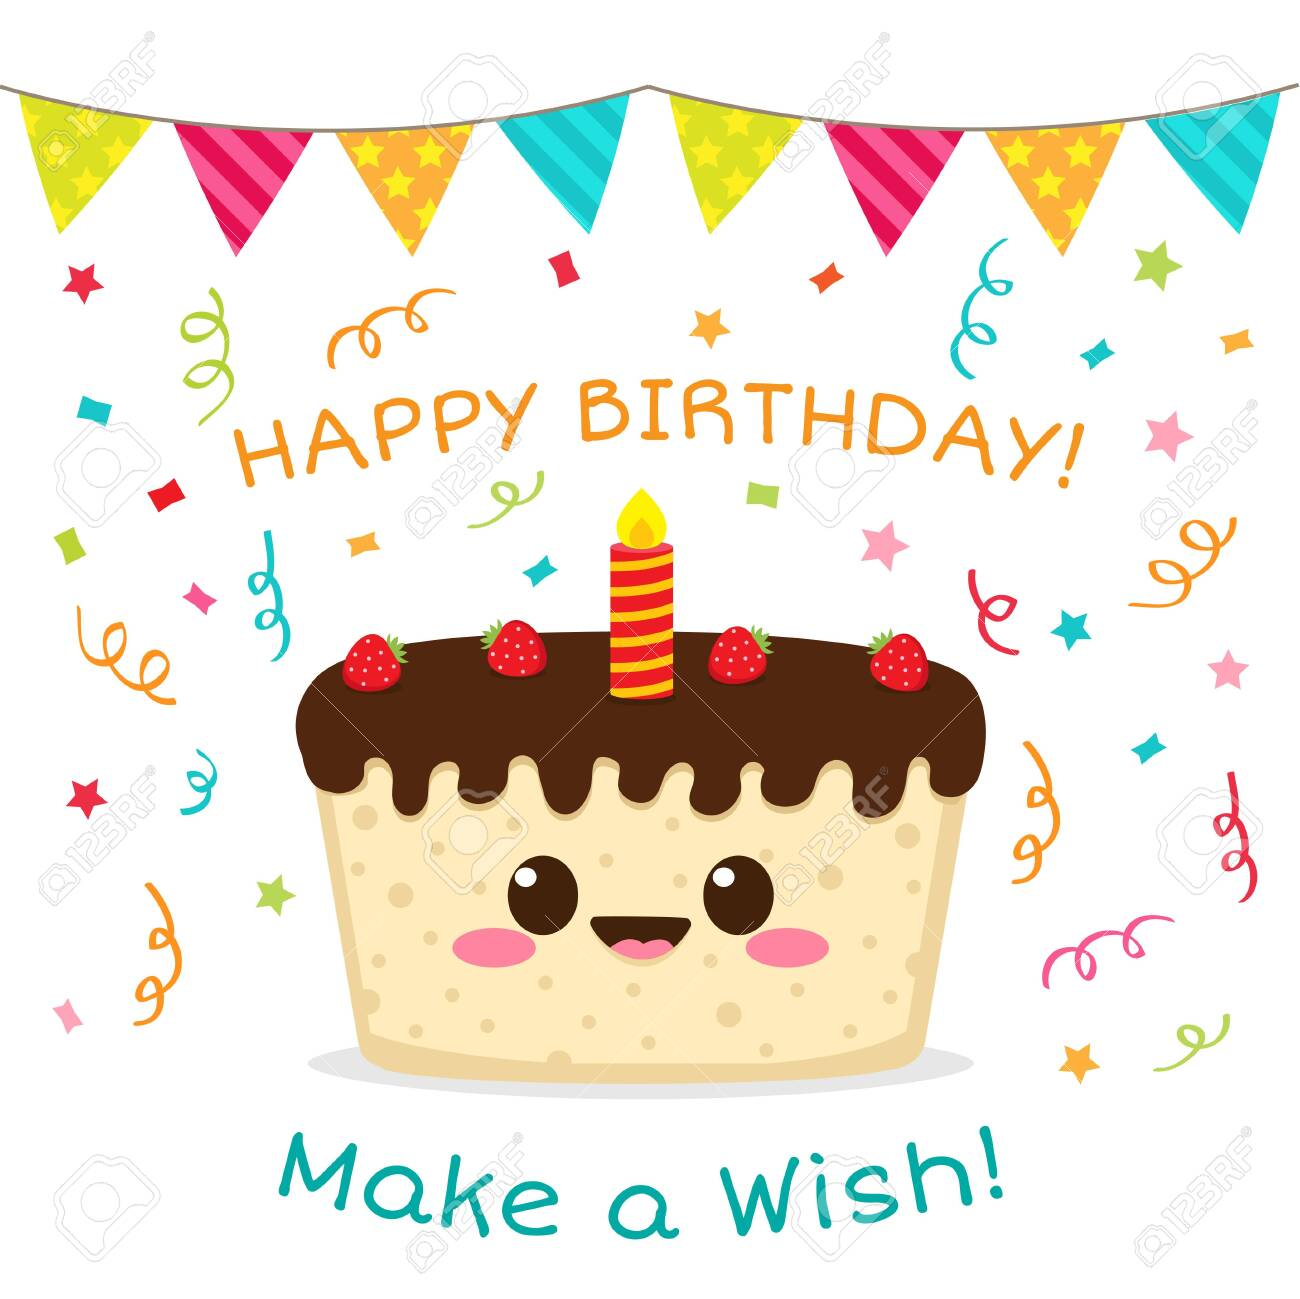 Happy Birthday Card Make A Wish Cute Chocolate Cake With Strawberry Royalty Free Cliparts Vectors And Stock Illustration Image 141605600